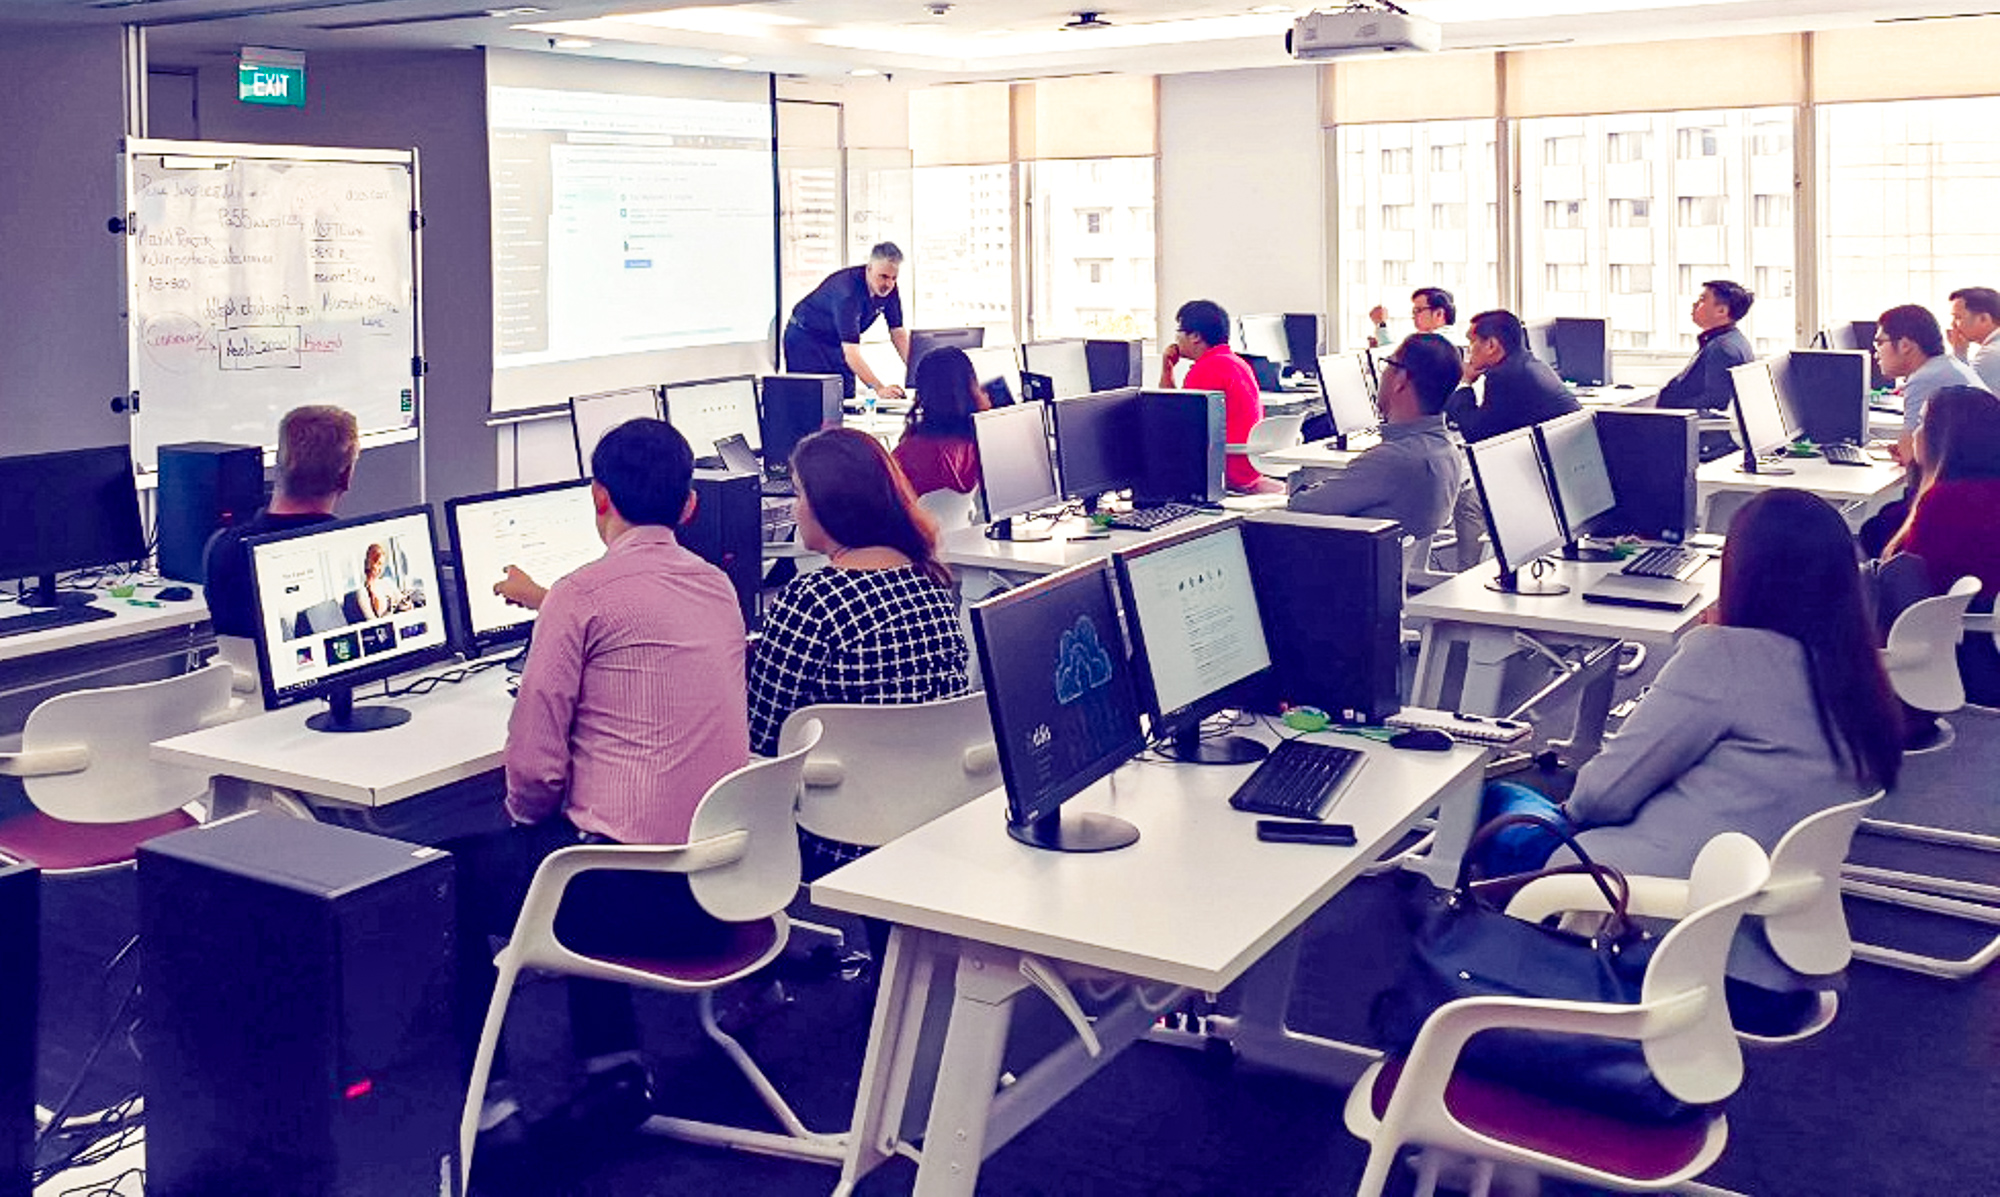 DDLS Philippines delivers quality IT training in a state-of-the-art environment.